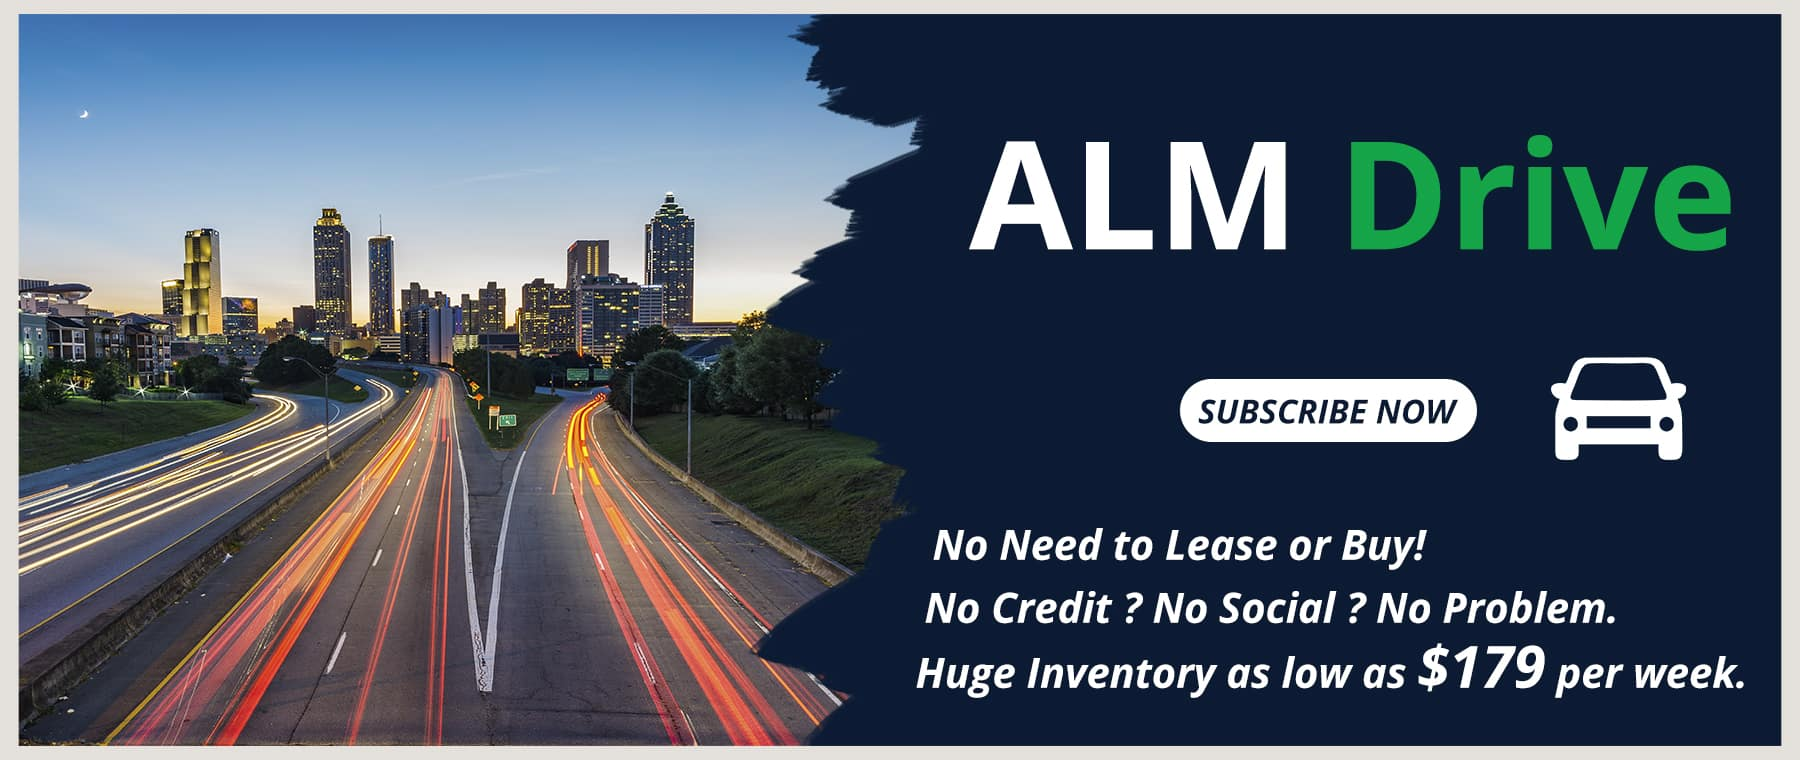 alm drive subscribe